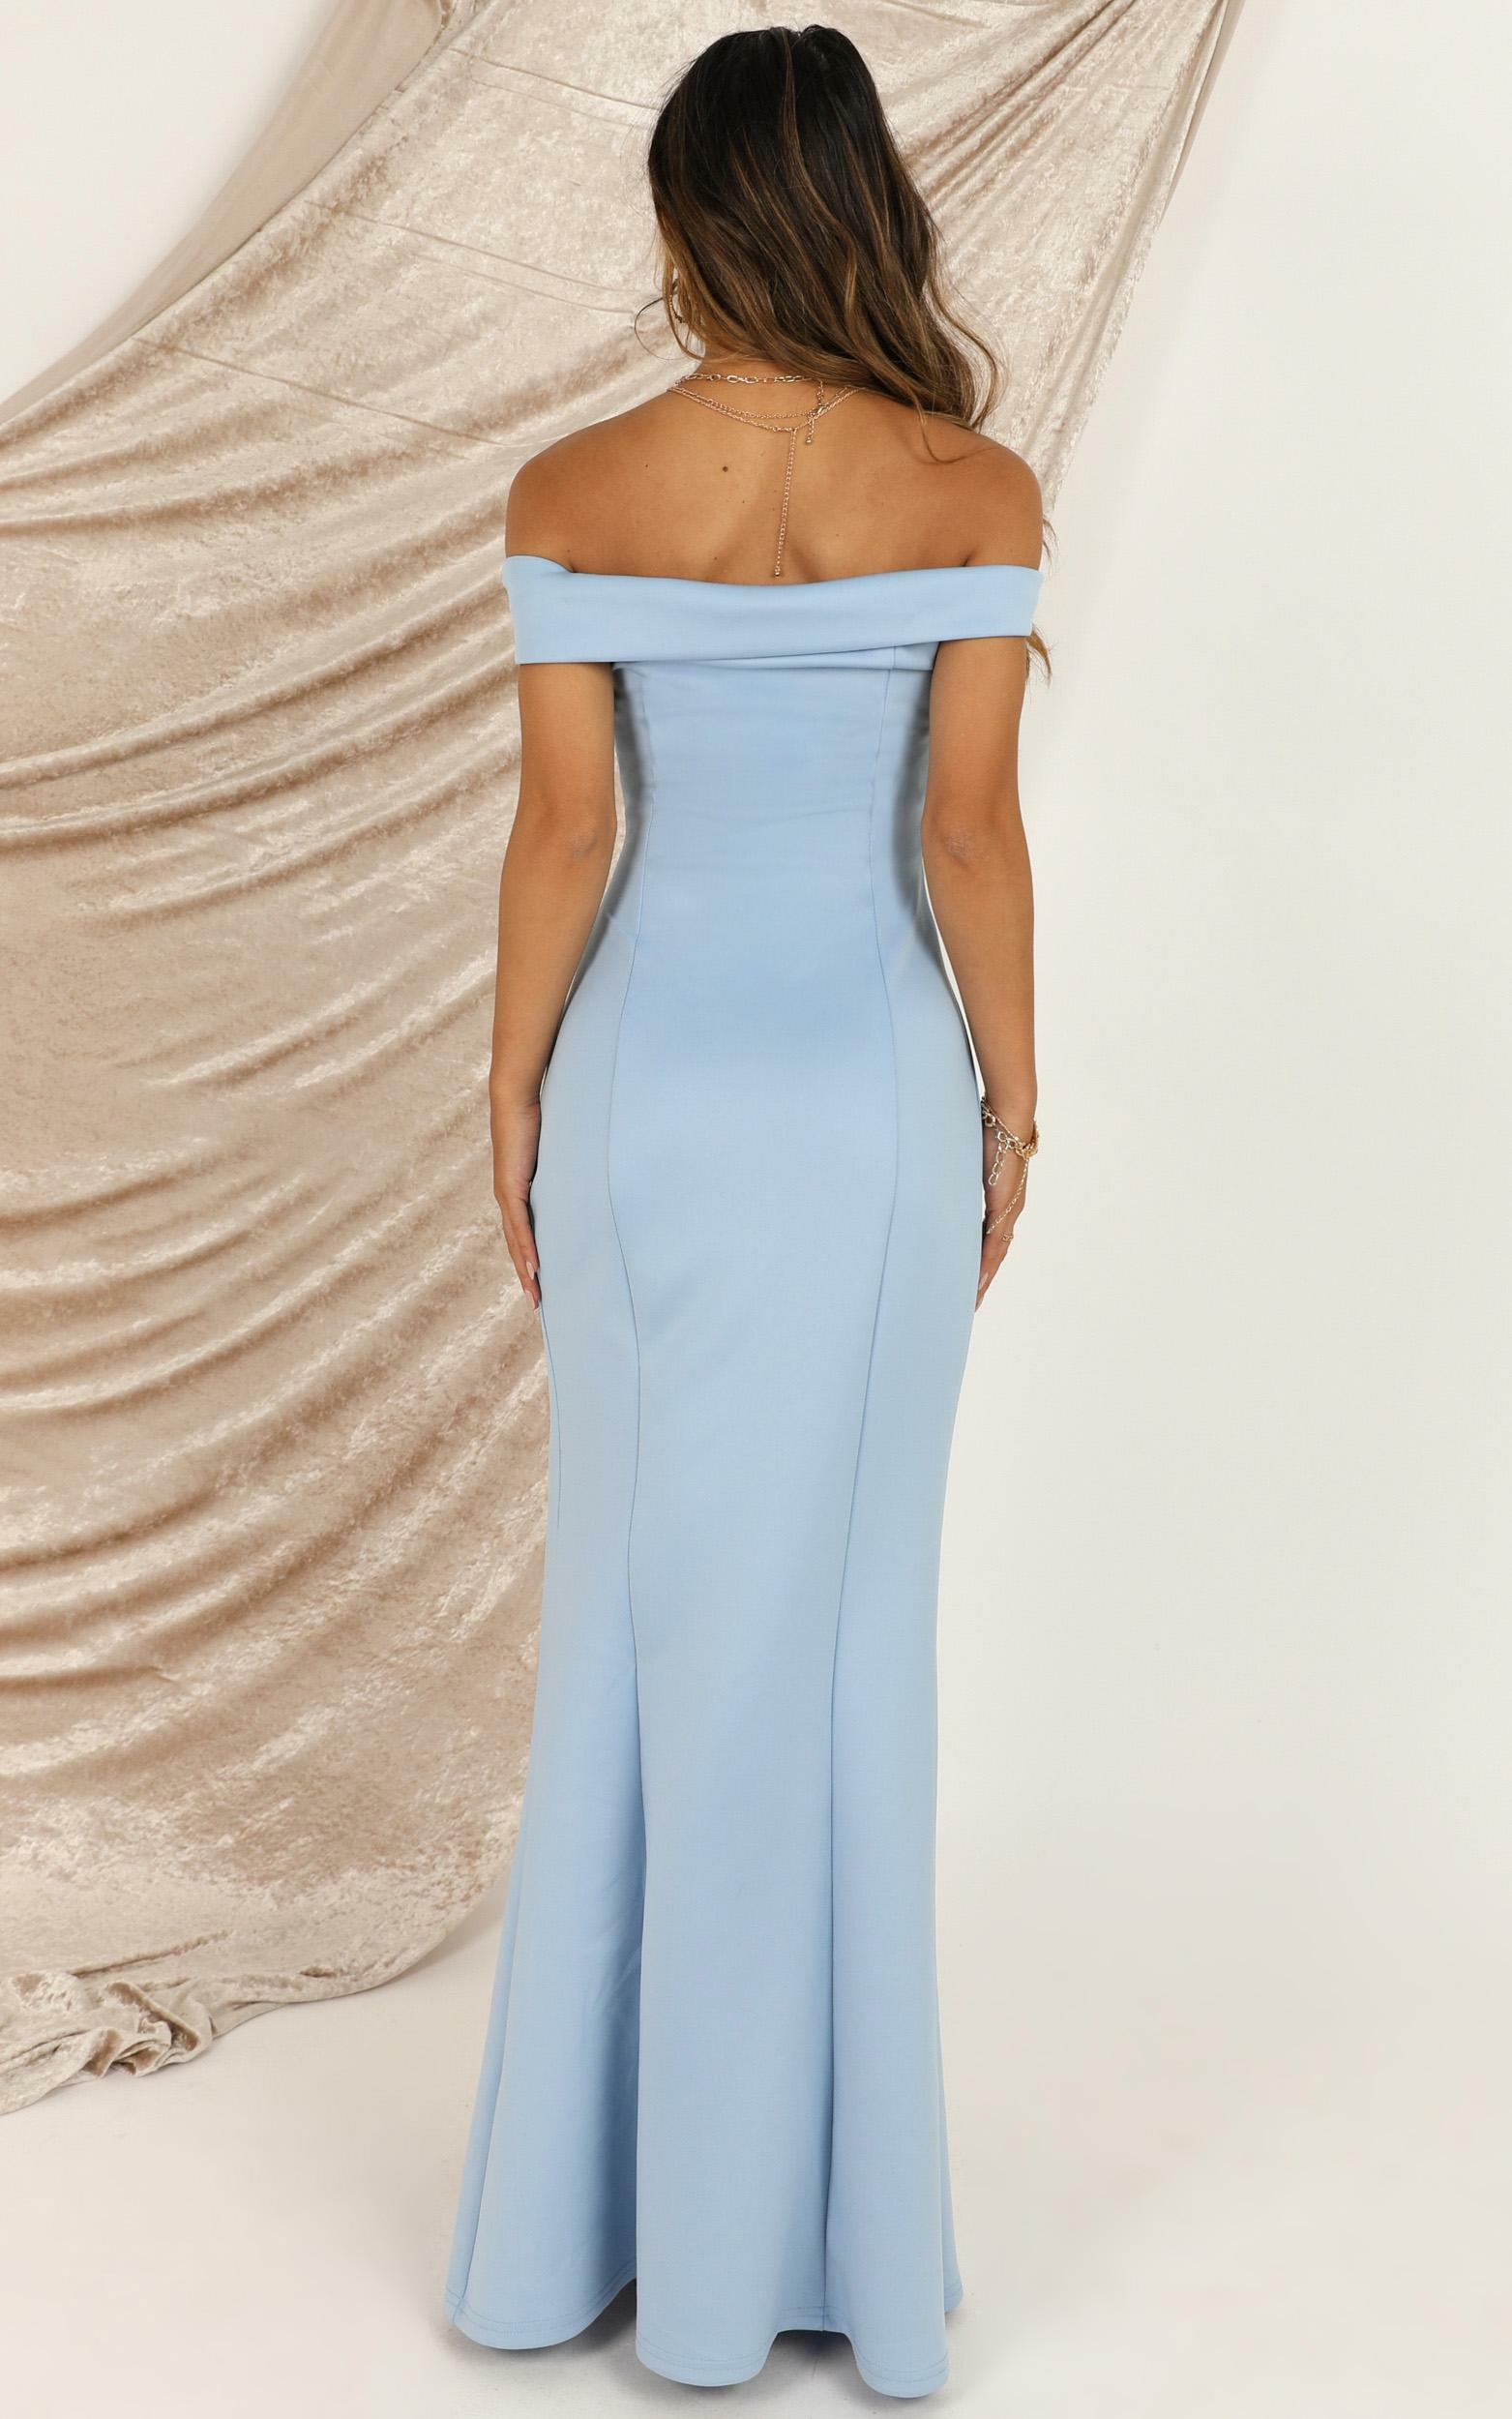 One For The Money Dress in powder blue - 8 (S), Blue, hi-res image number null